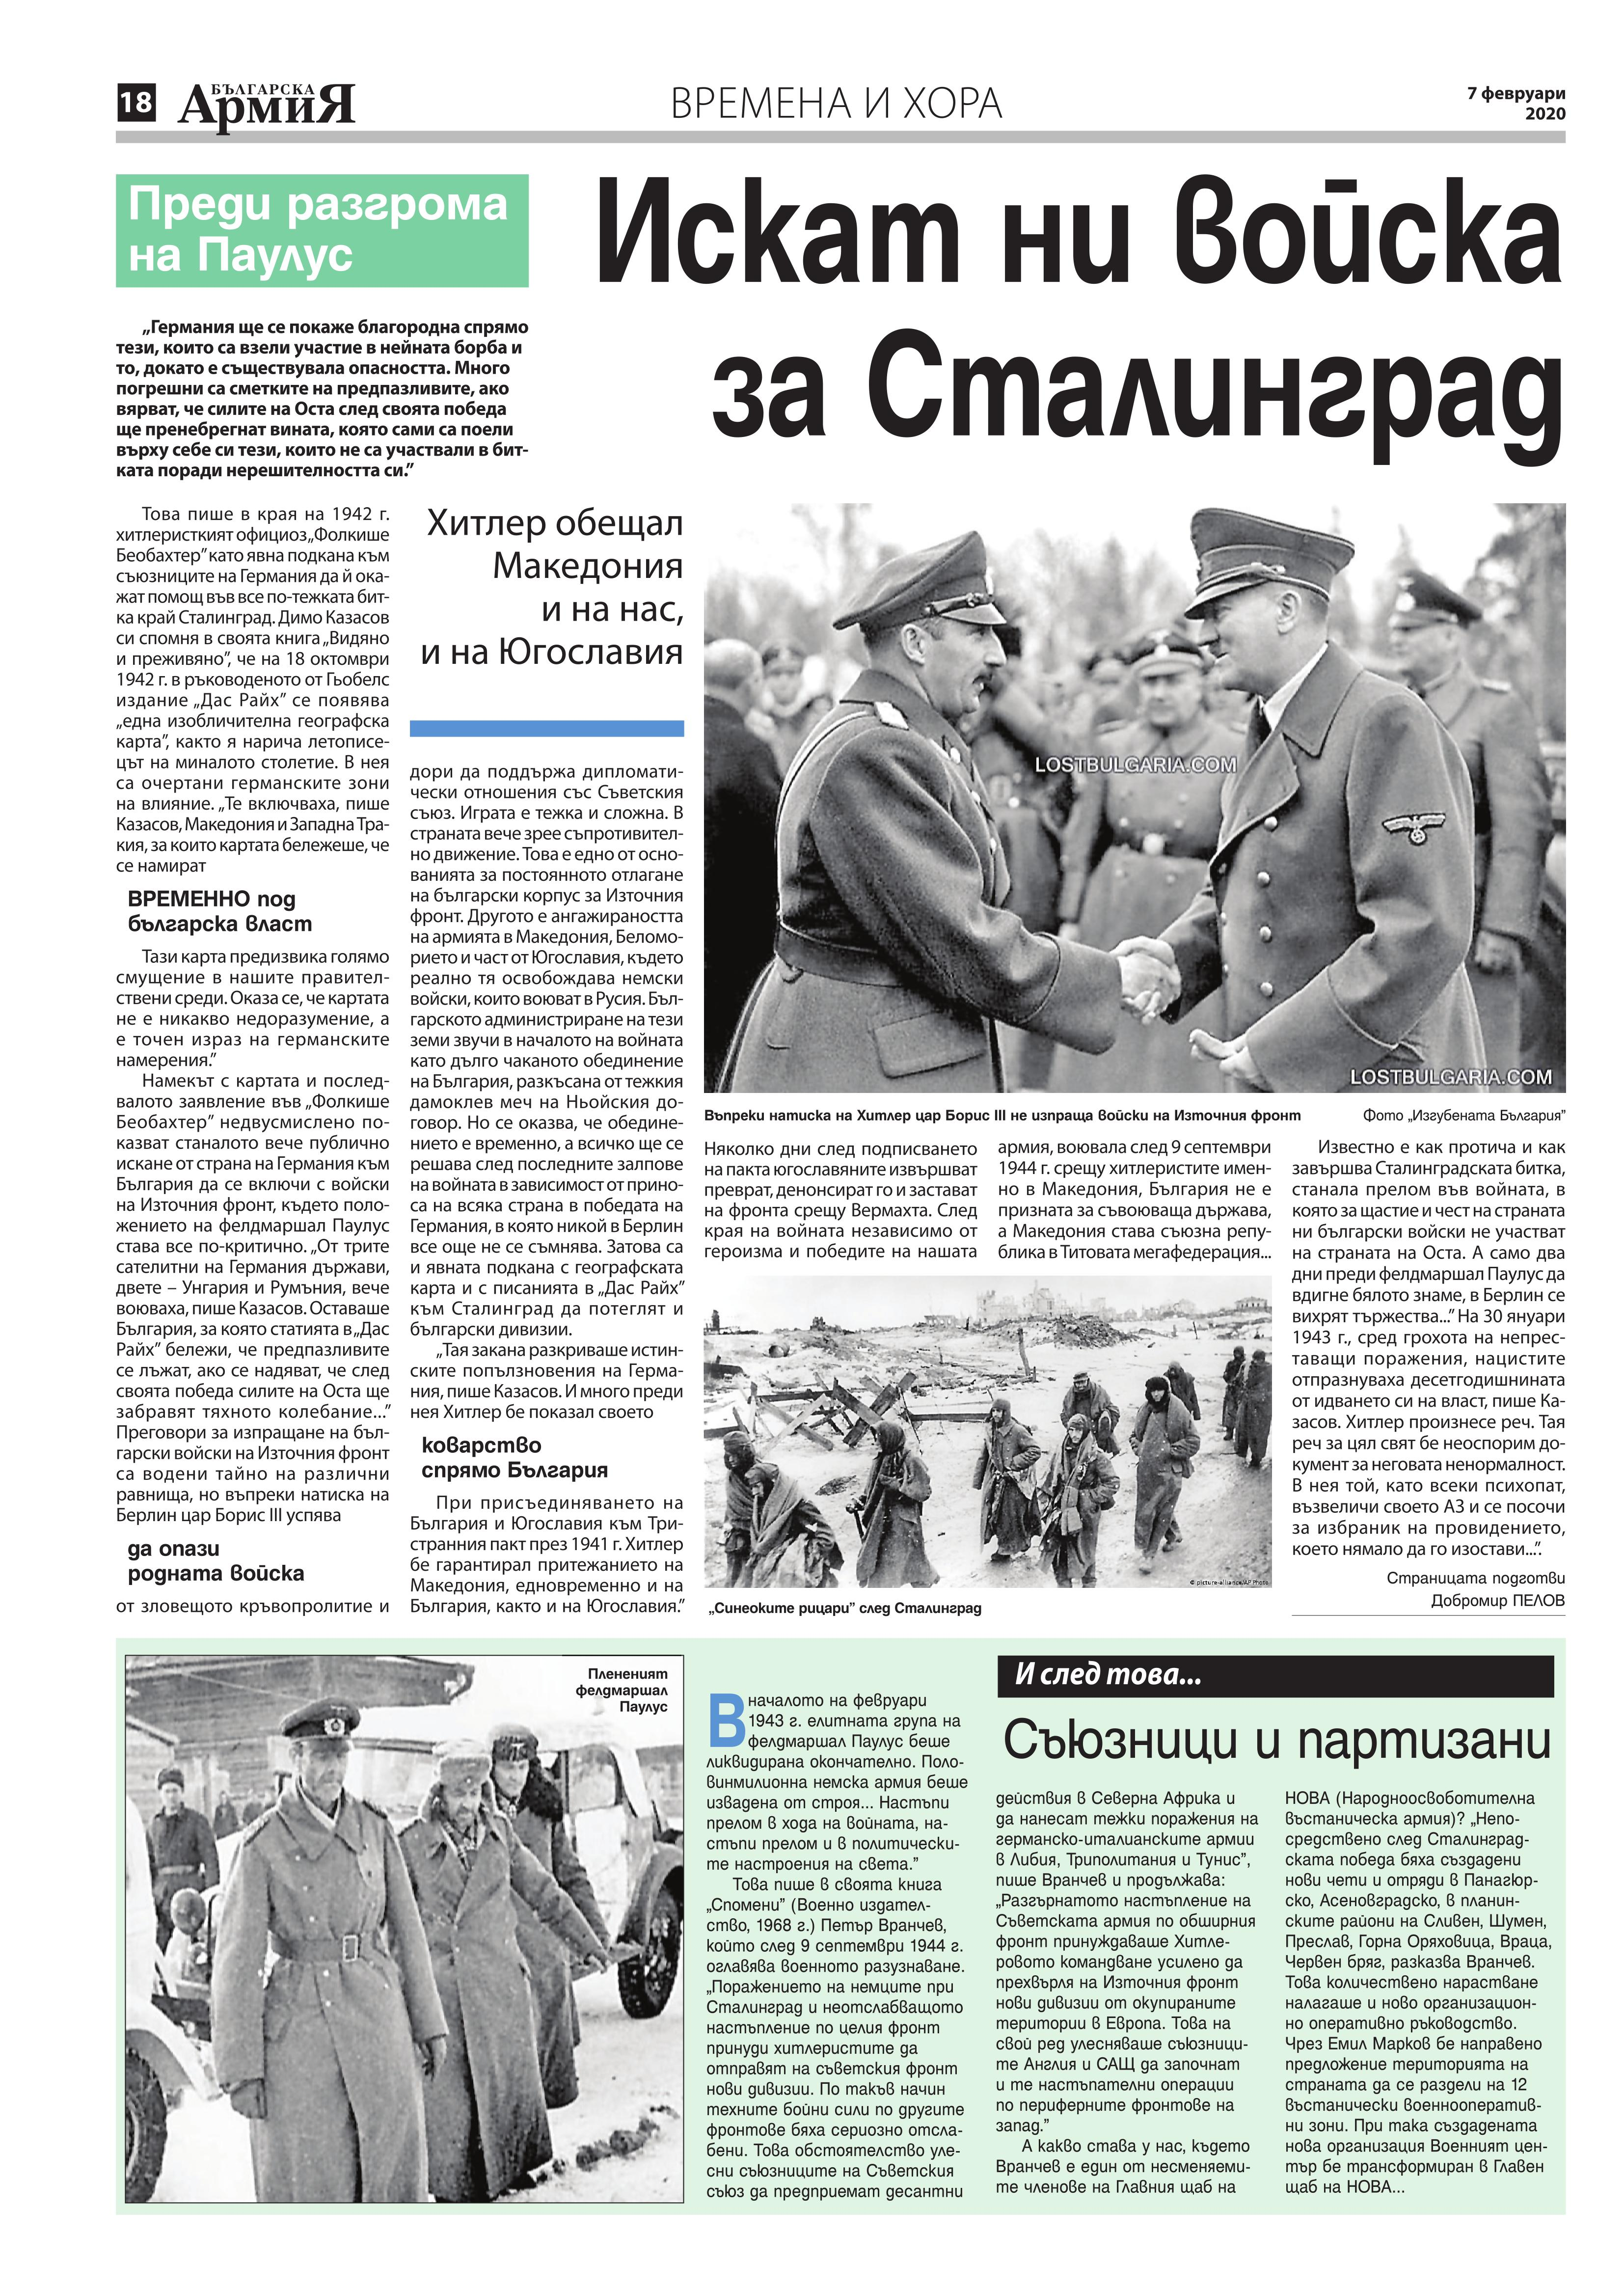 https://armymedia.bg/wp-content/uploads/2015/06/18.page1_-126.jpg